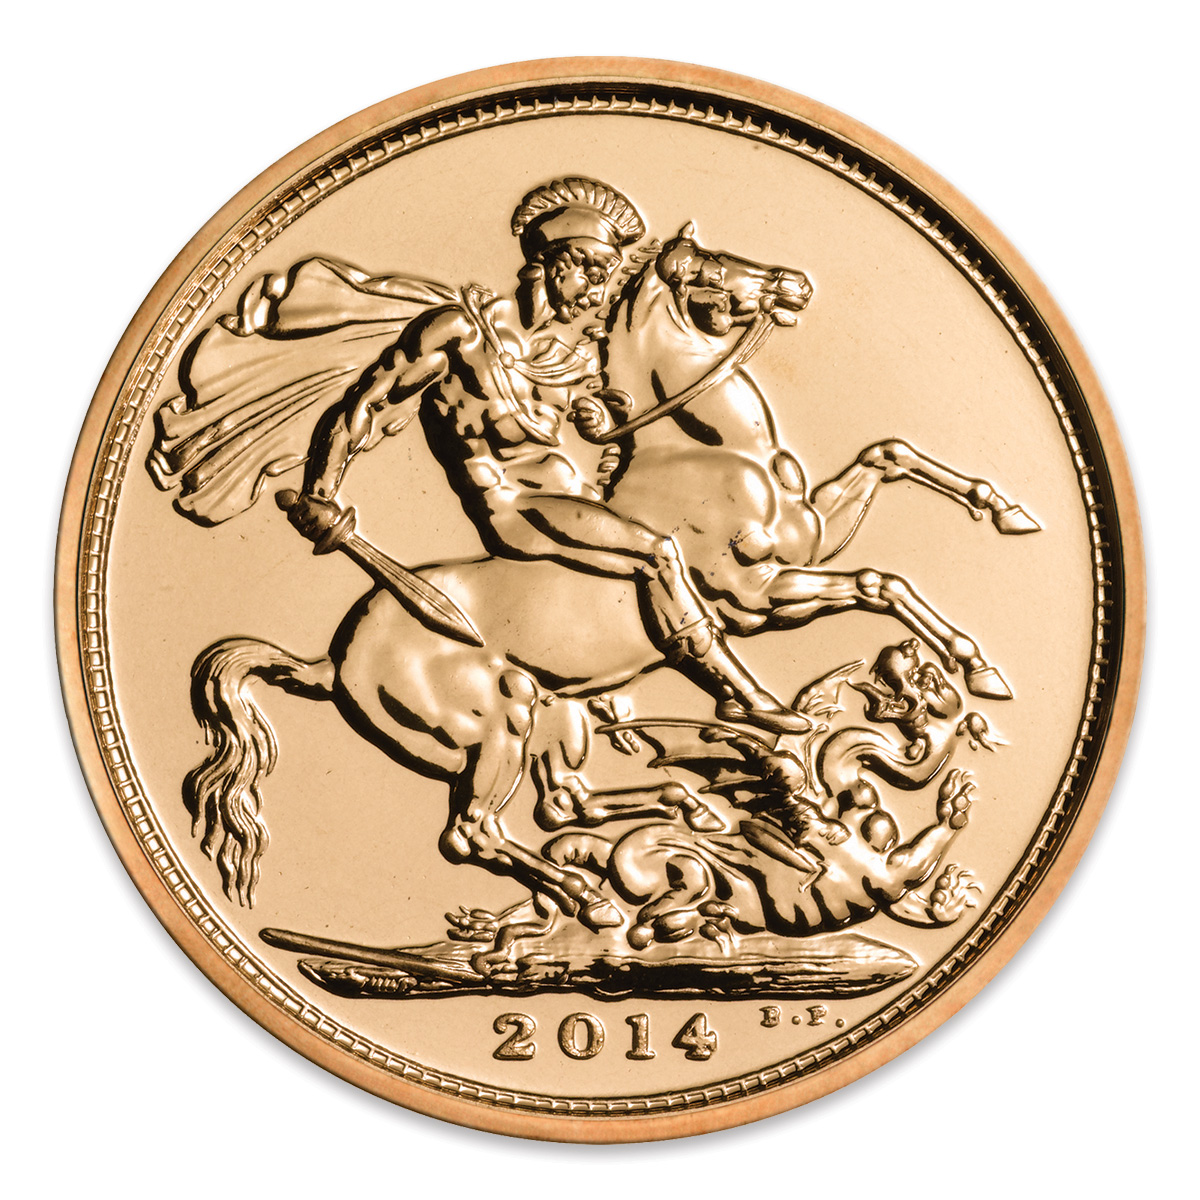 2014 Gold Full Sovereign Coin | The Royal Mint